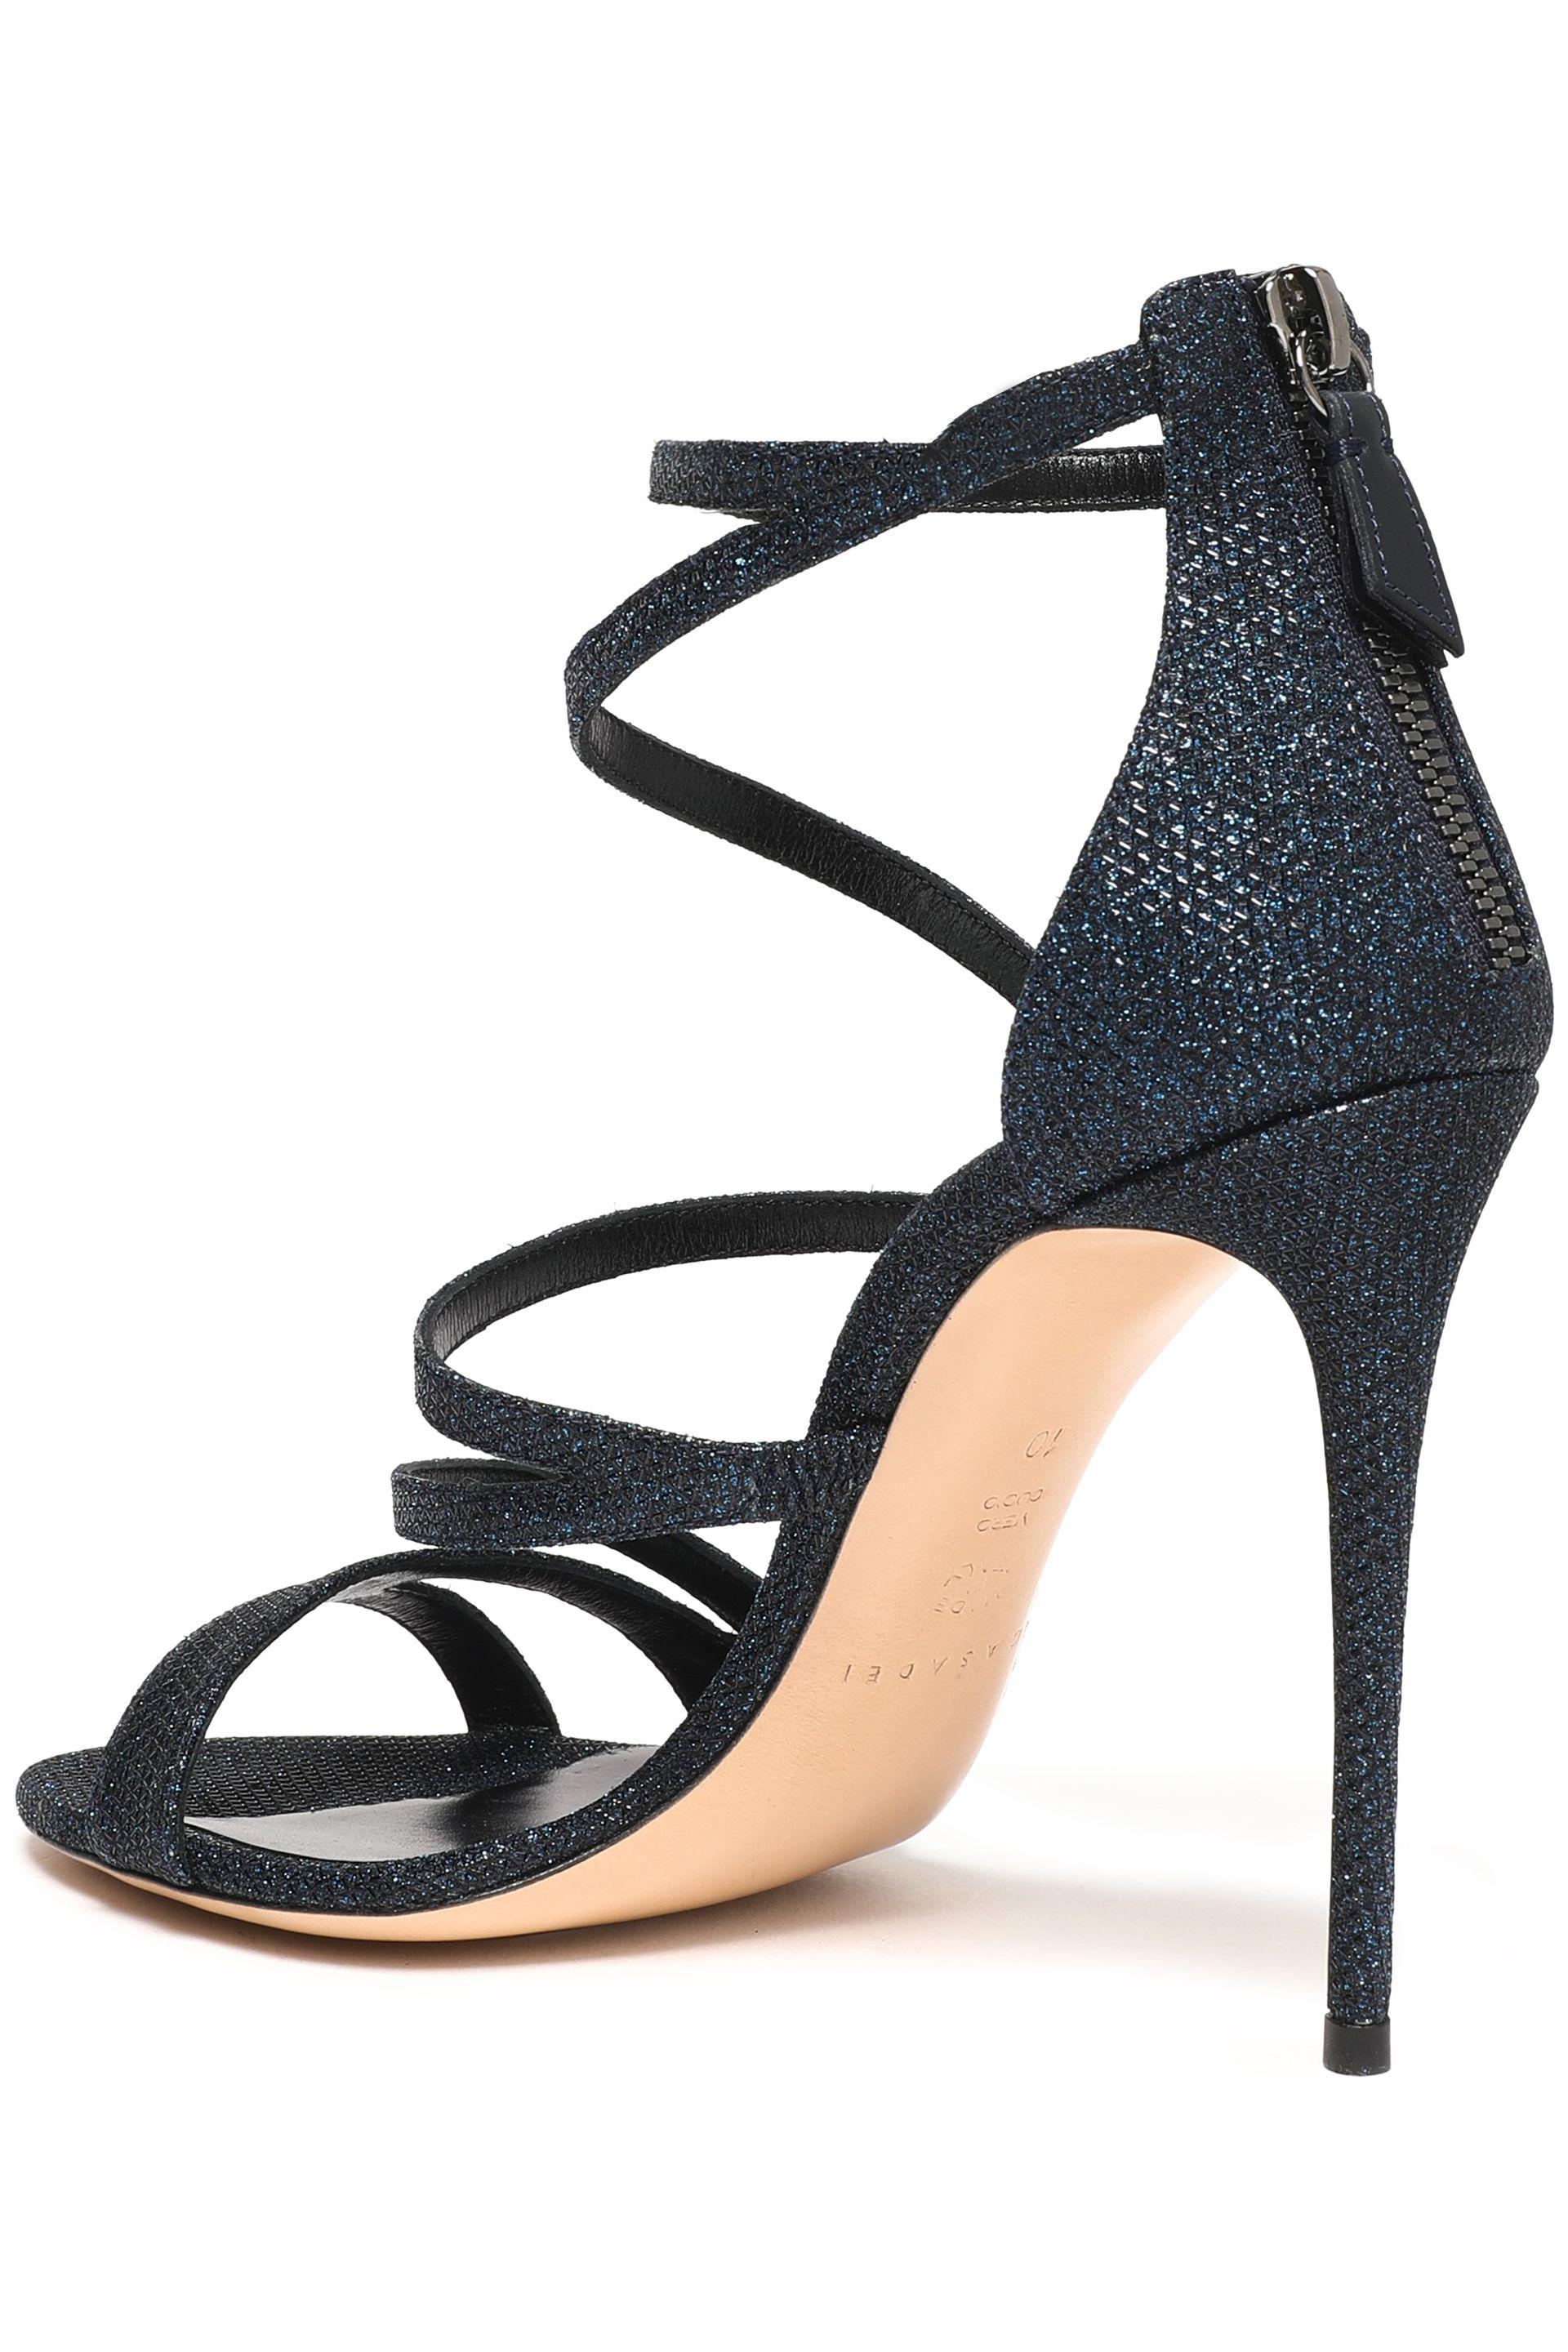 Casadei Woman Satellite Metallic Mesh Sandals Midnight Blue Size 40 Casadei f6if3Pog7